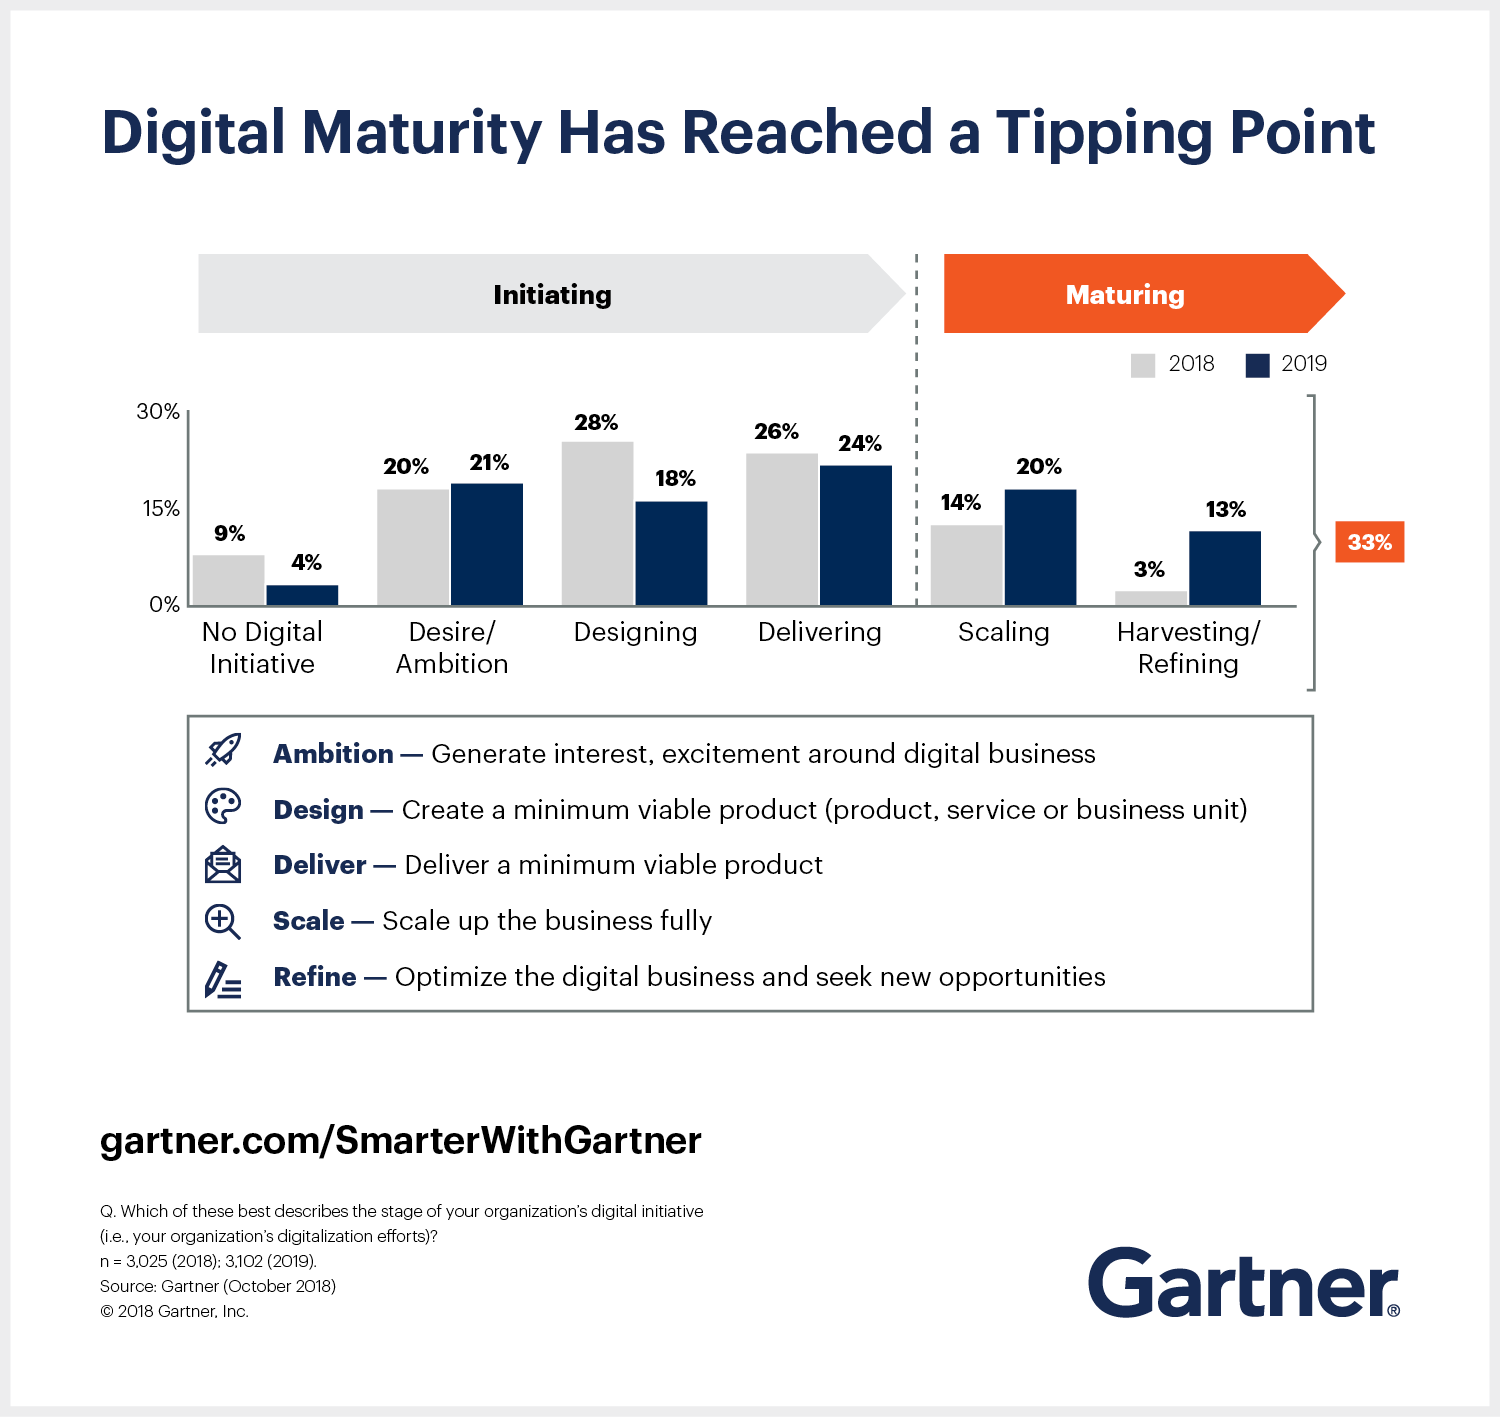 Gartner CIO Agenda for 2019 shows that digital maturity has reached a tipping point.